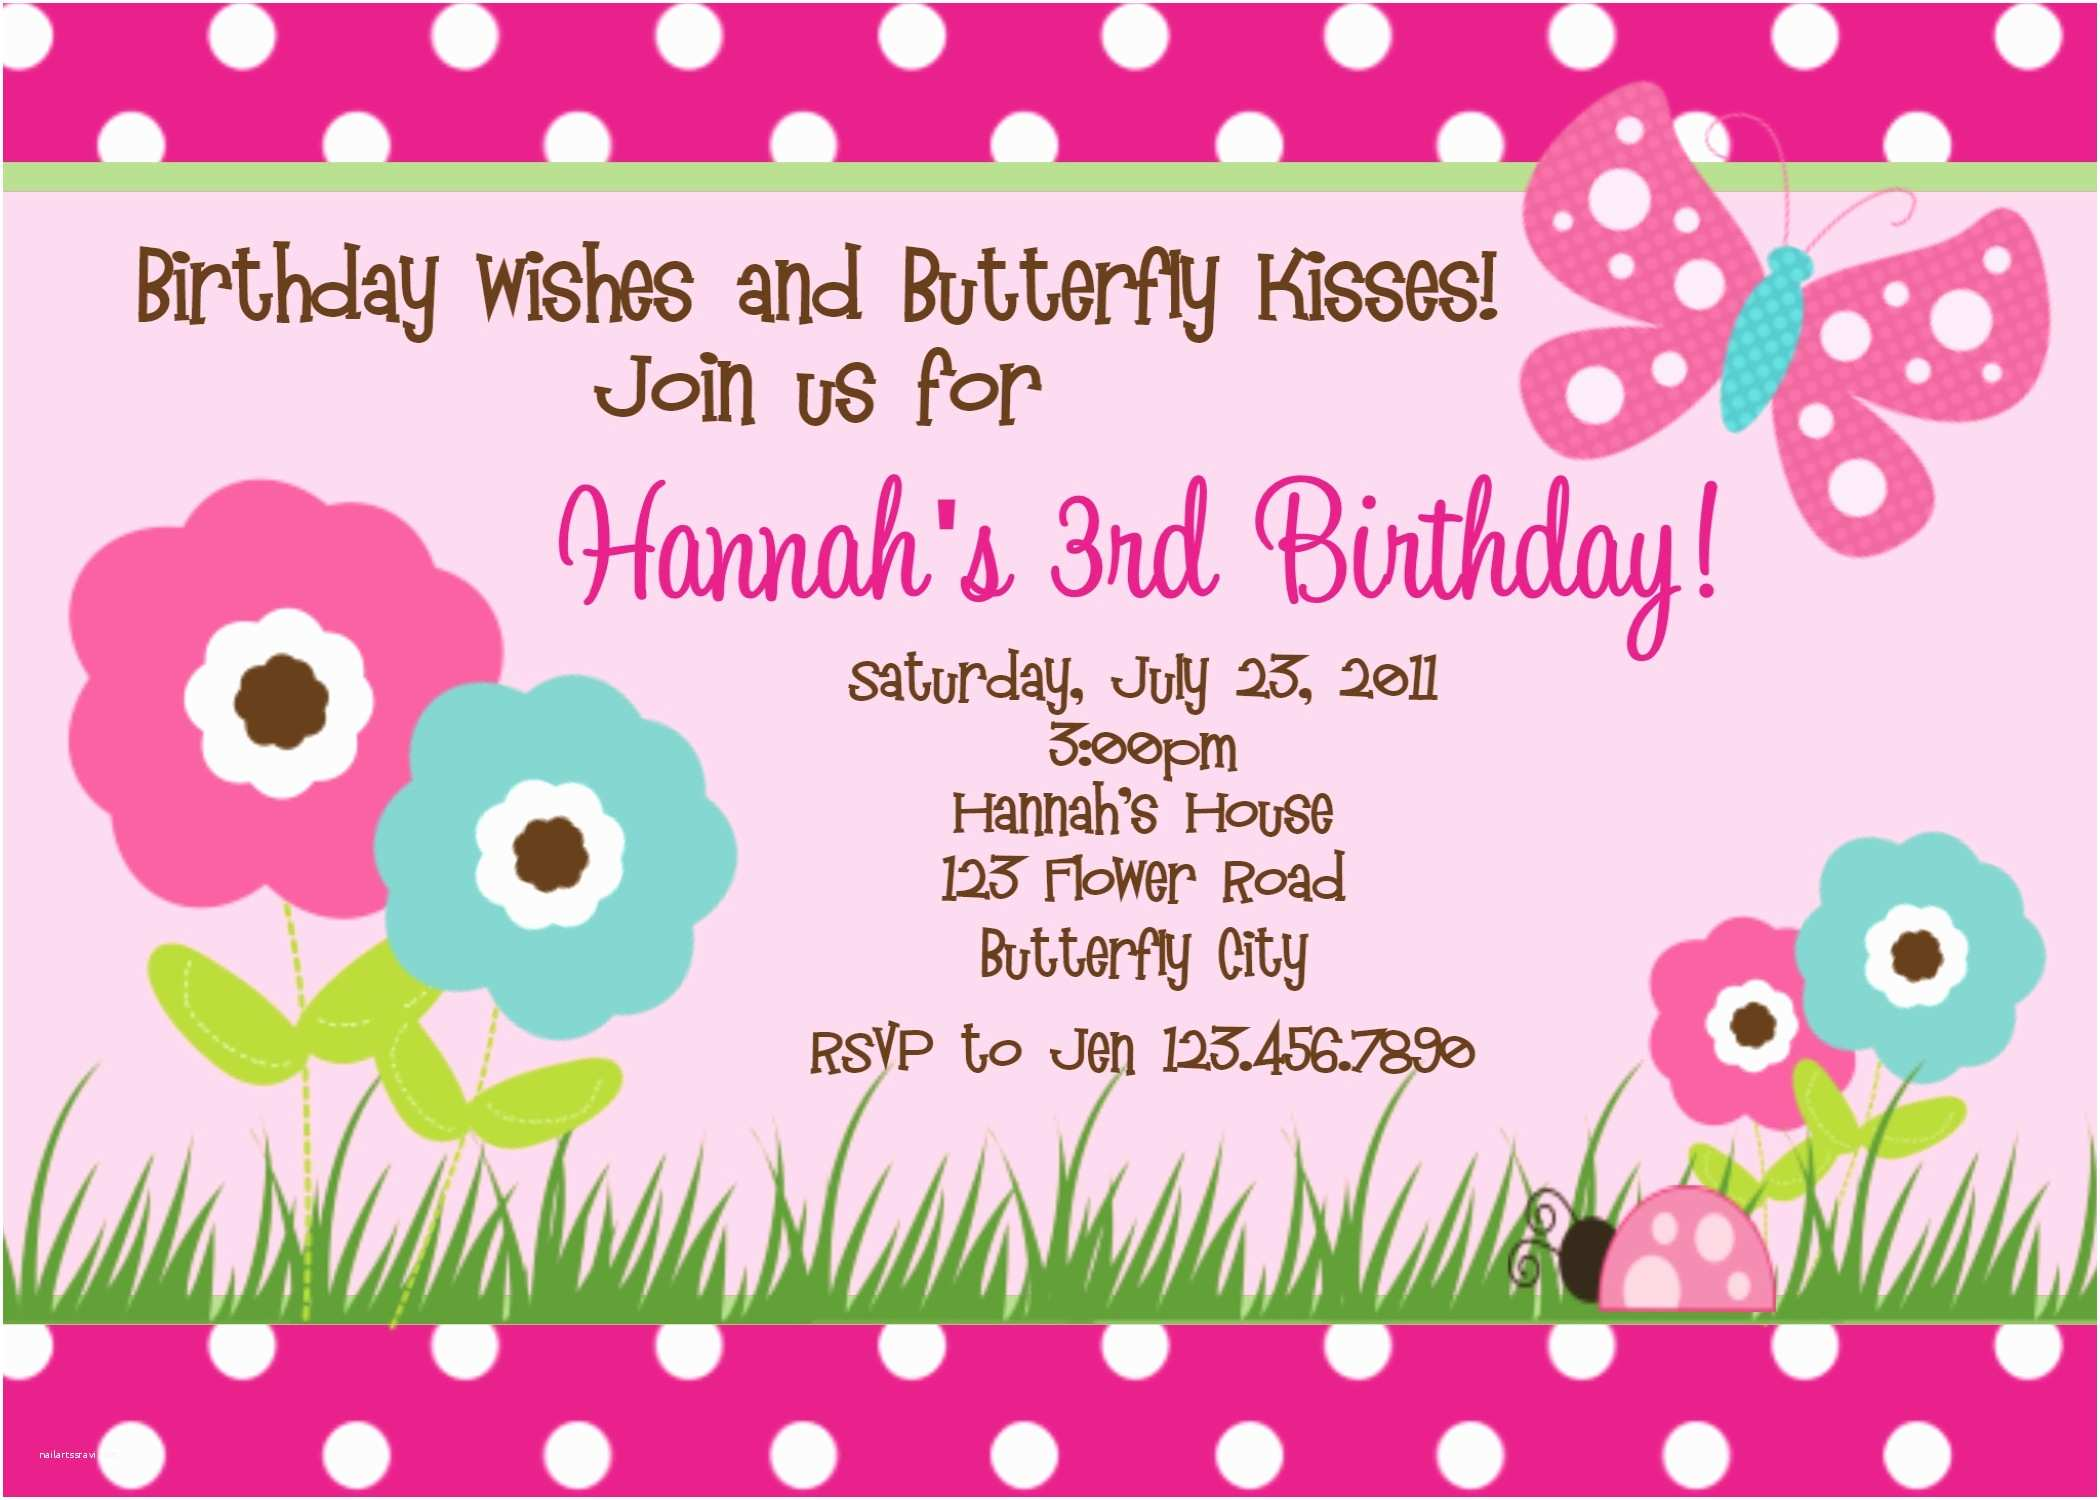 Butterfly Birthday Invitations Printable Birthday Invitations butterfly Party Little Girl